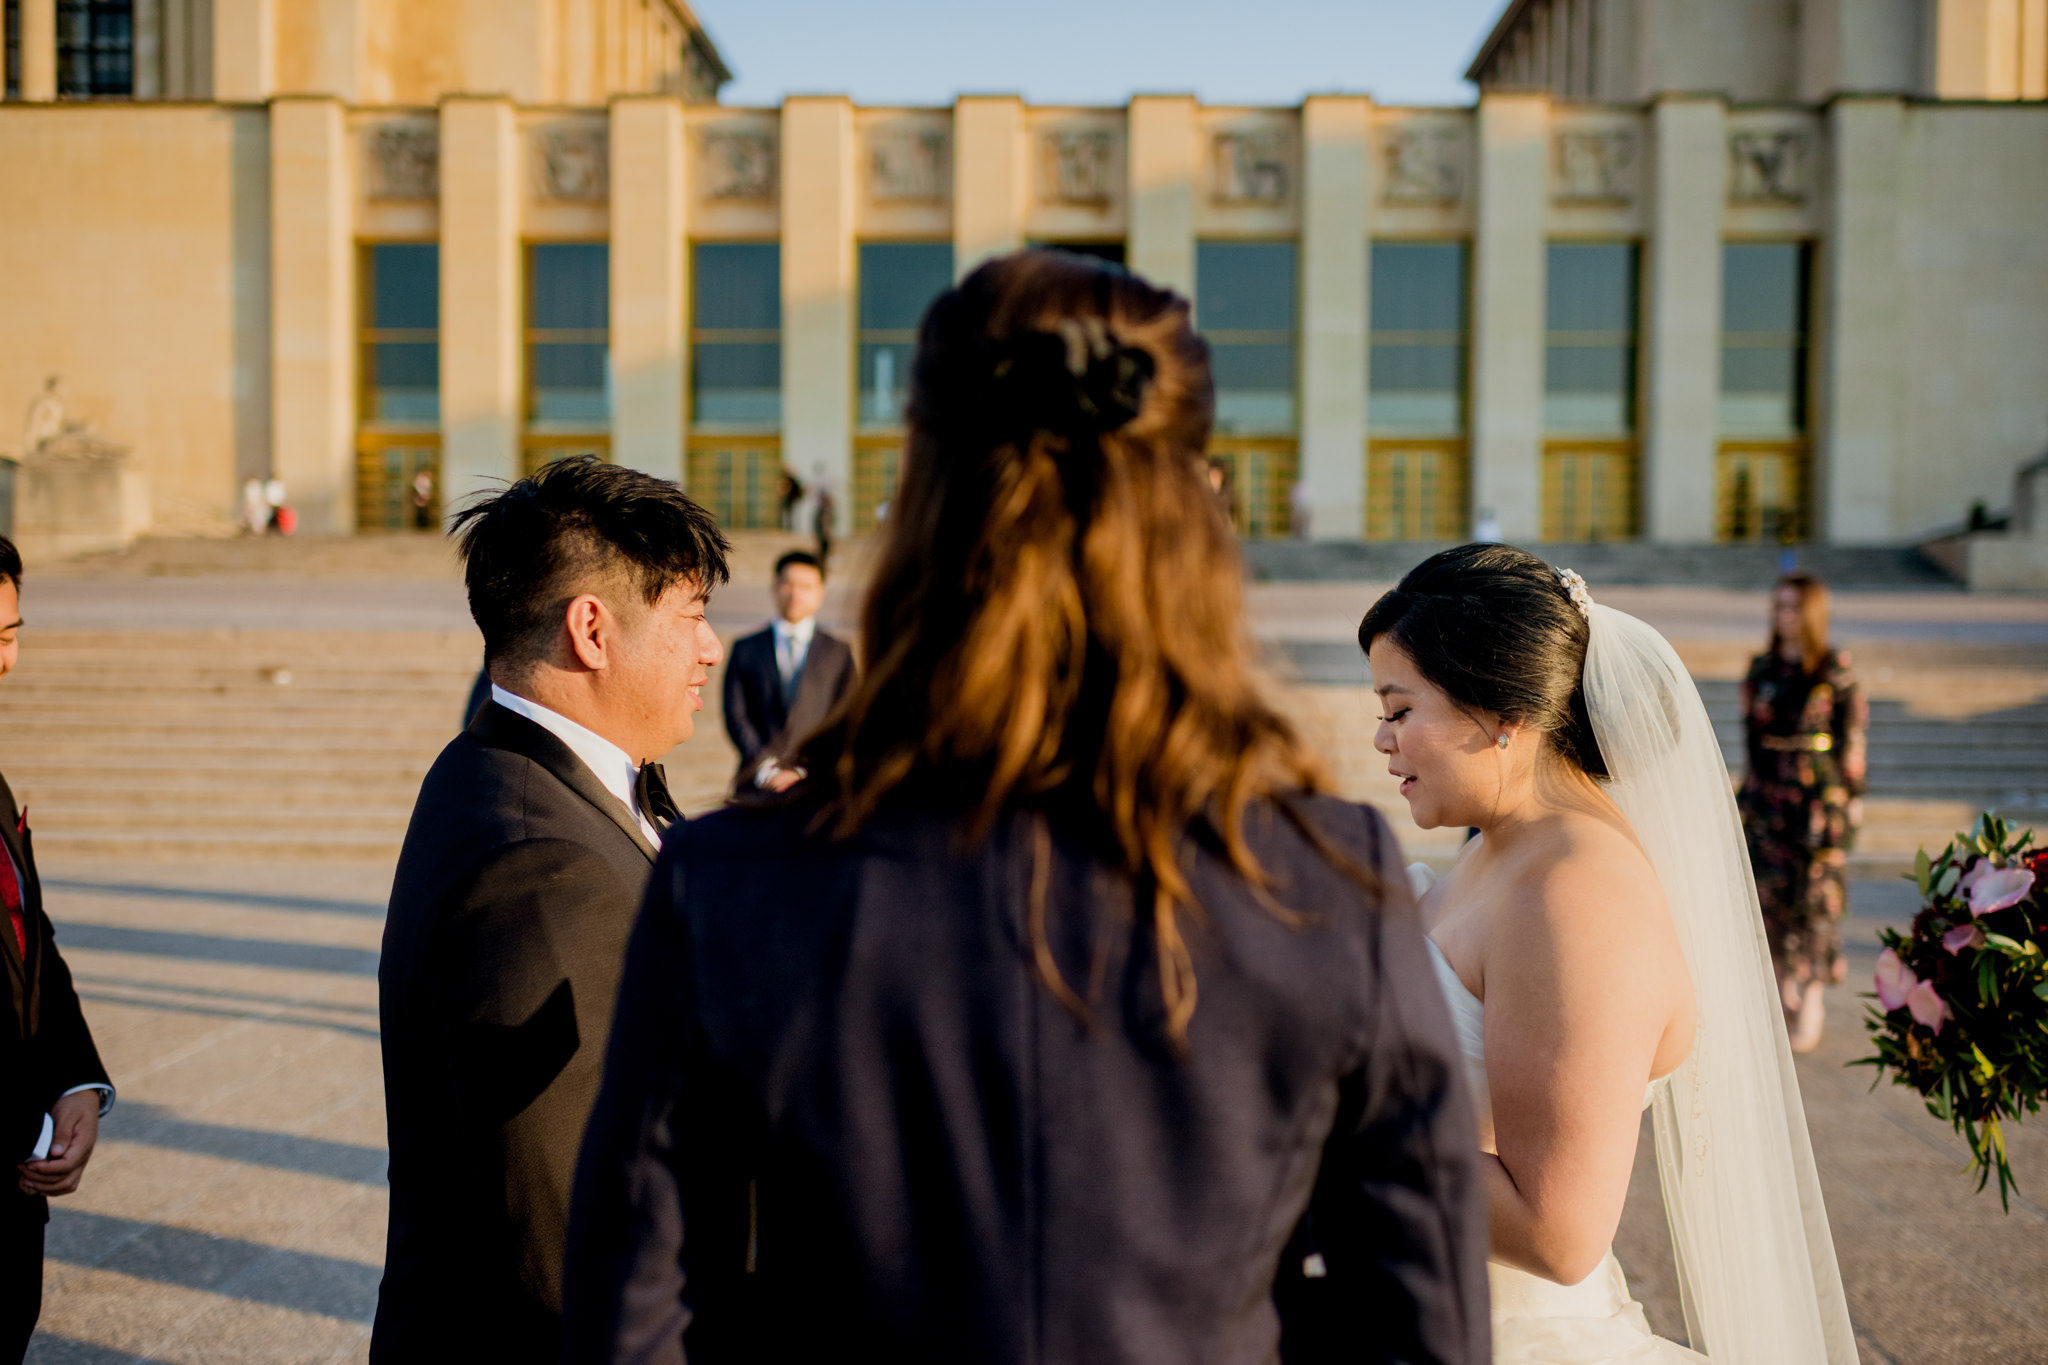 A bride recites her vows to her groom at their Palais De Chaillot wedding.